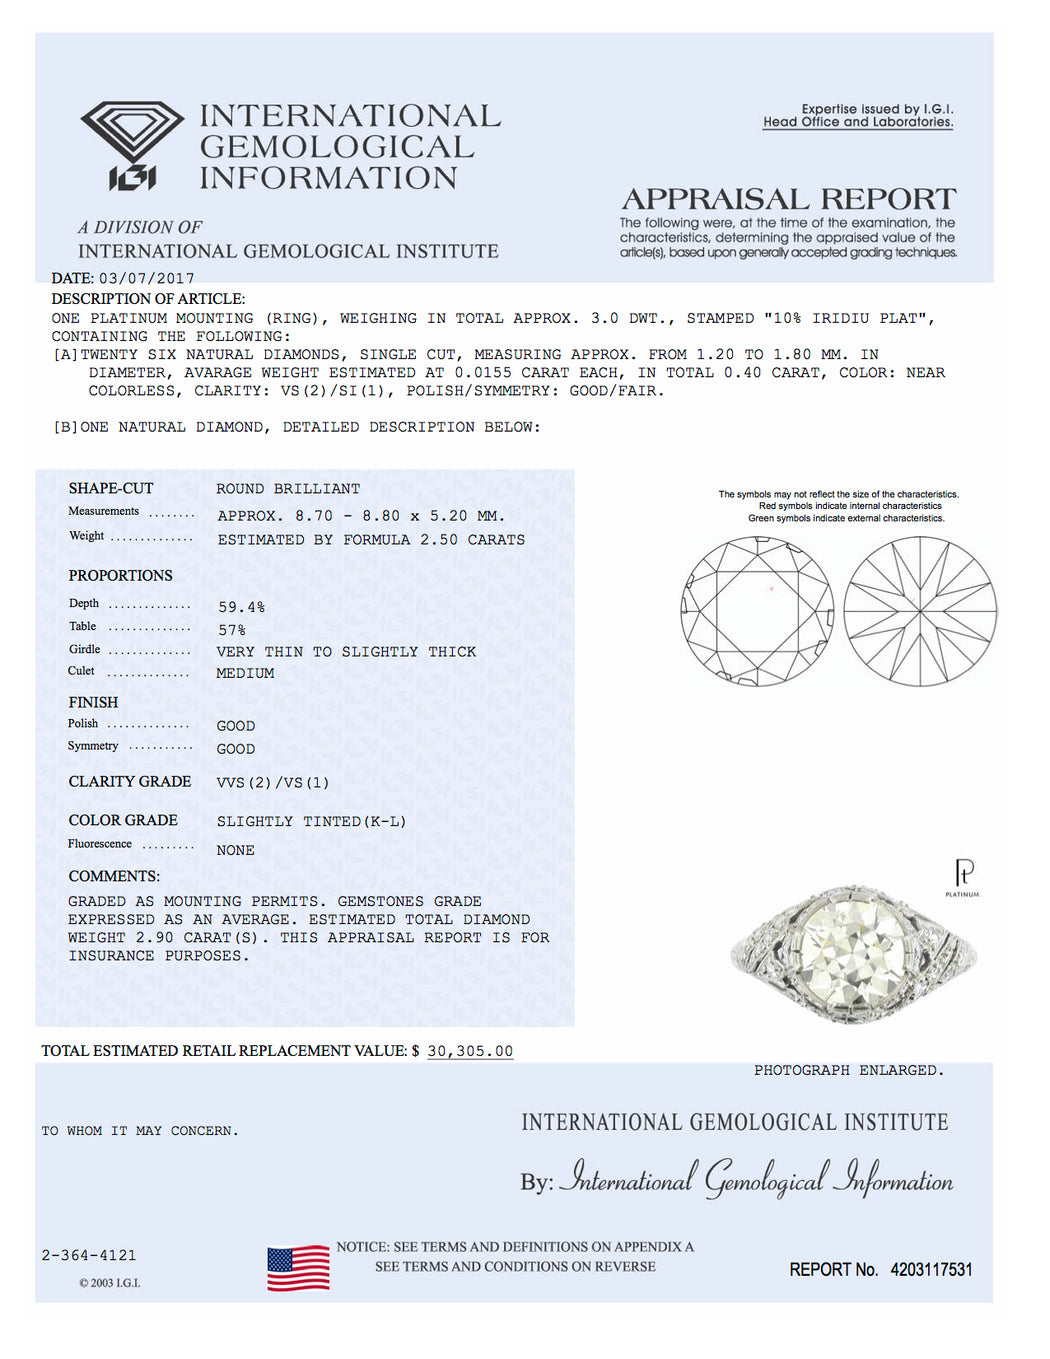 alsayegh whole certified igi direct are forever rings for black brilliant chart diamonds home ring loose buy engagement lab color and pictures online gold made purchase diamond